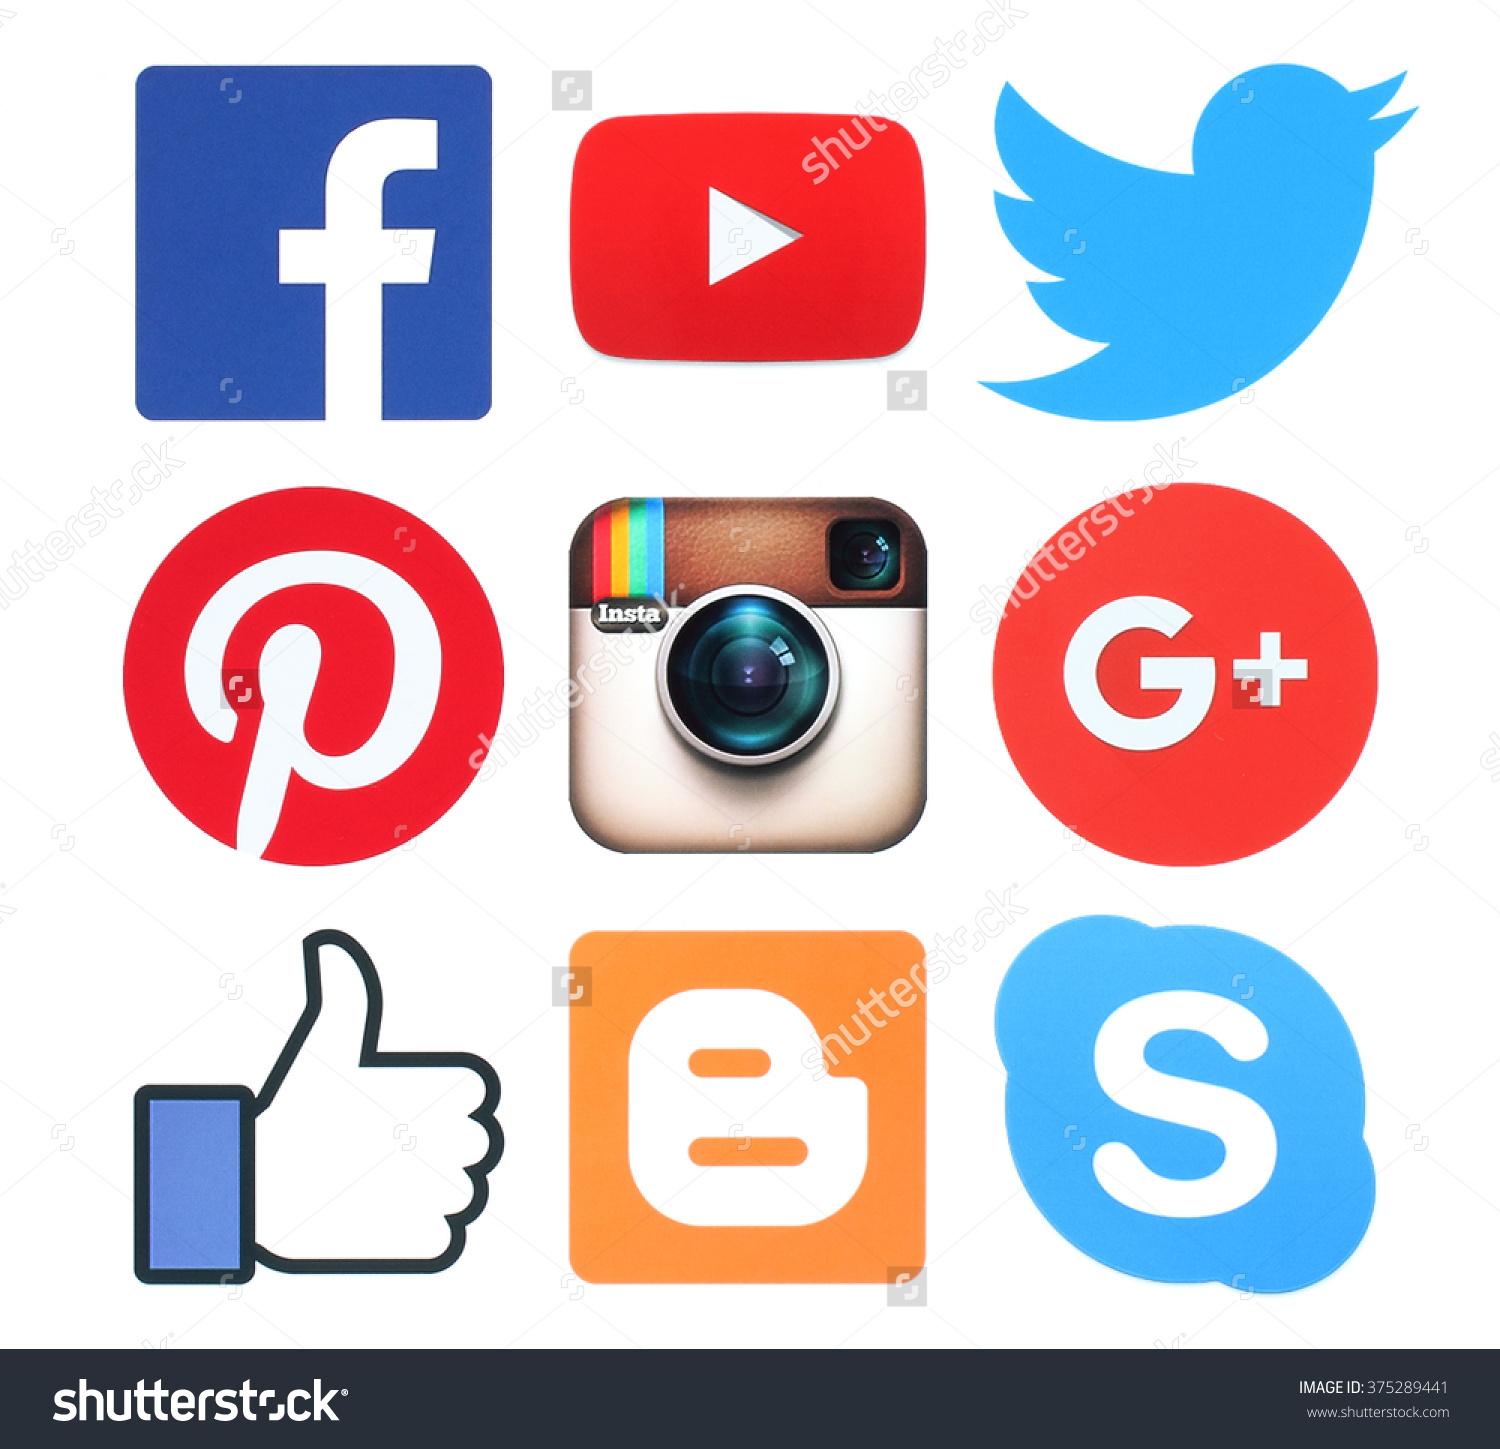 Facebook twitter instagram clipart vector freeuse download Kiev Ukraine February 8 2016collection Popular Stock Photo ... vector freeuse download